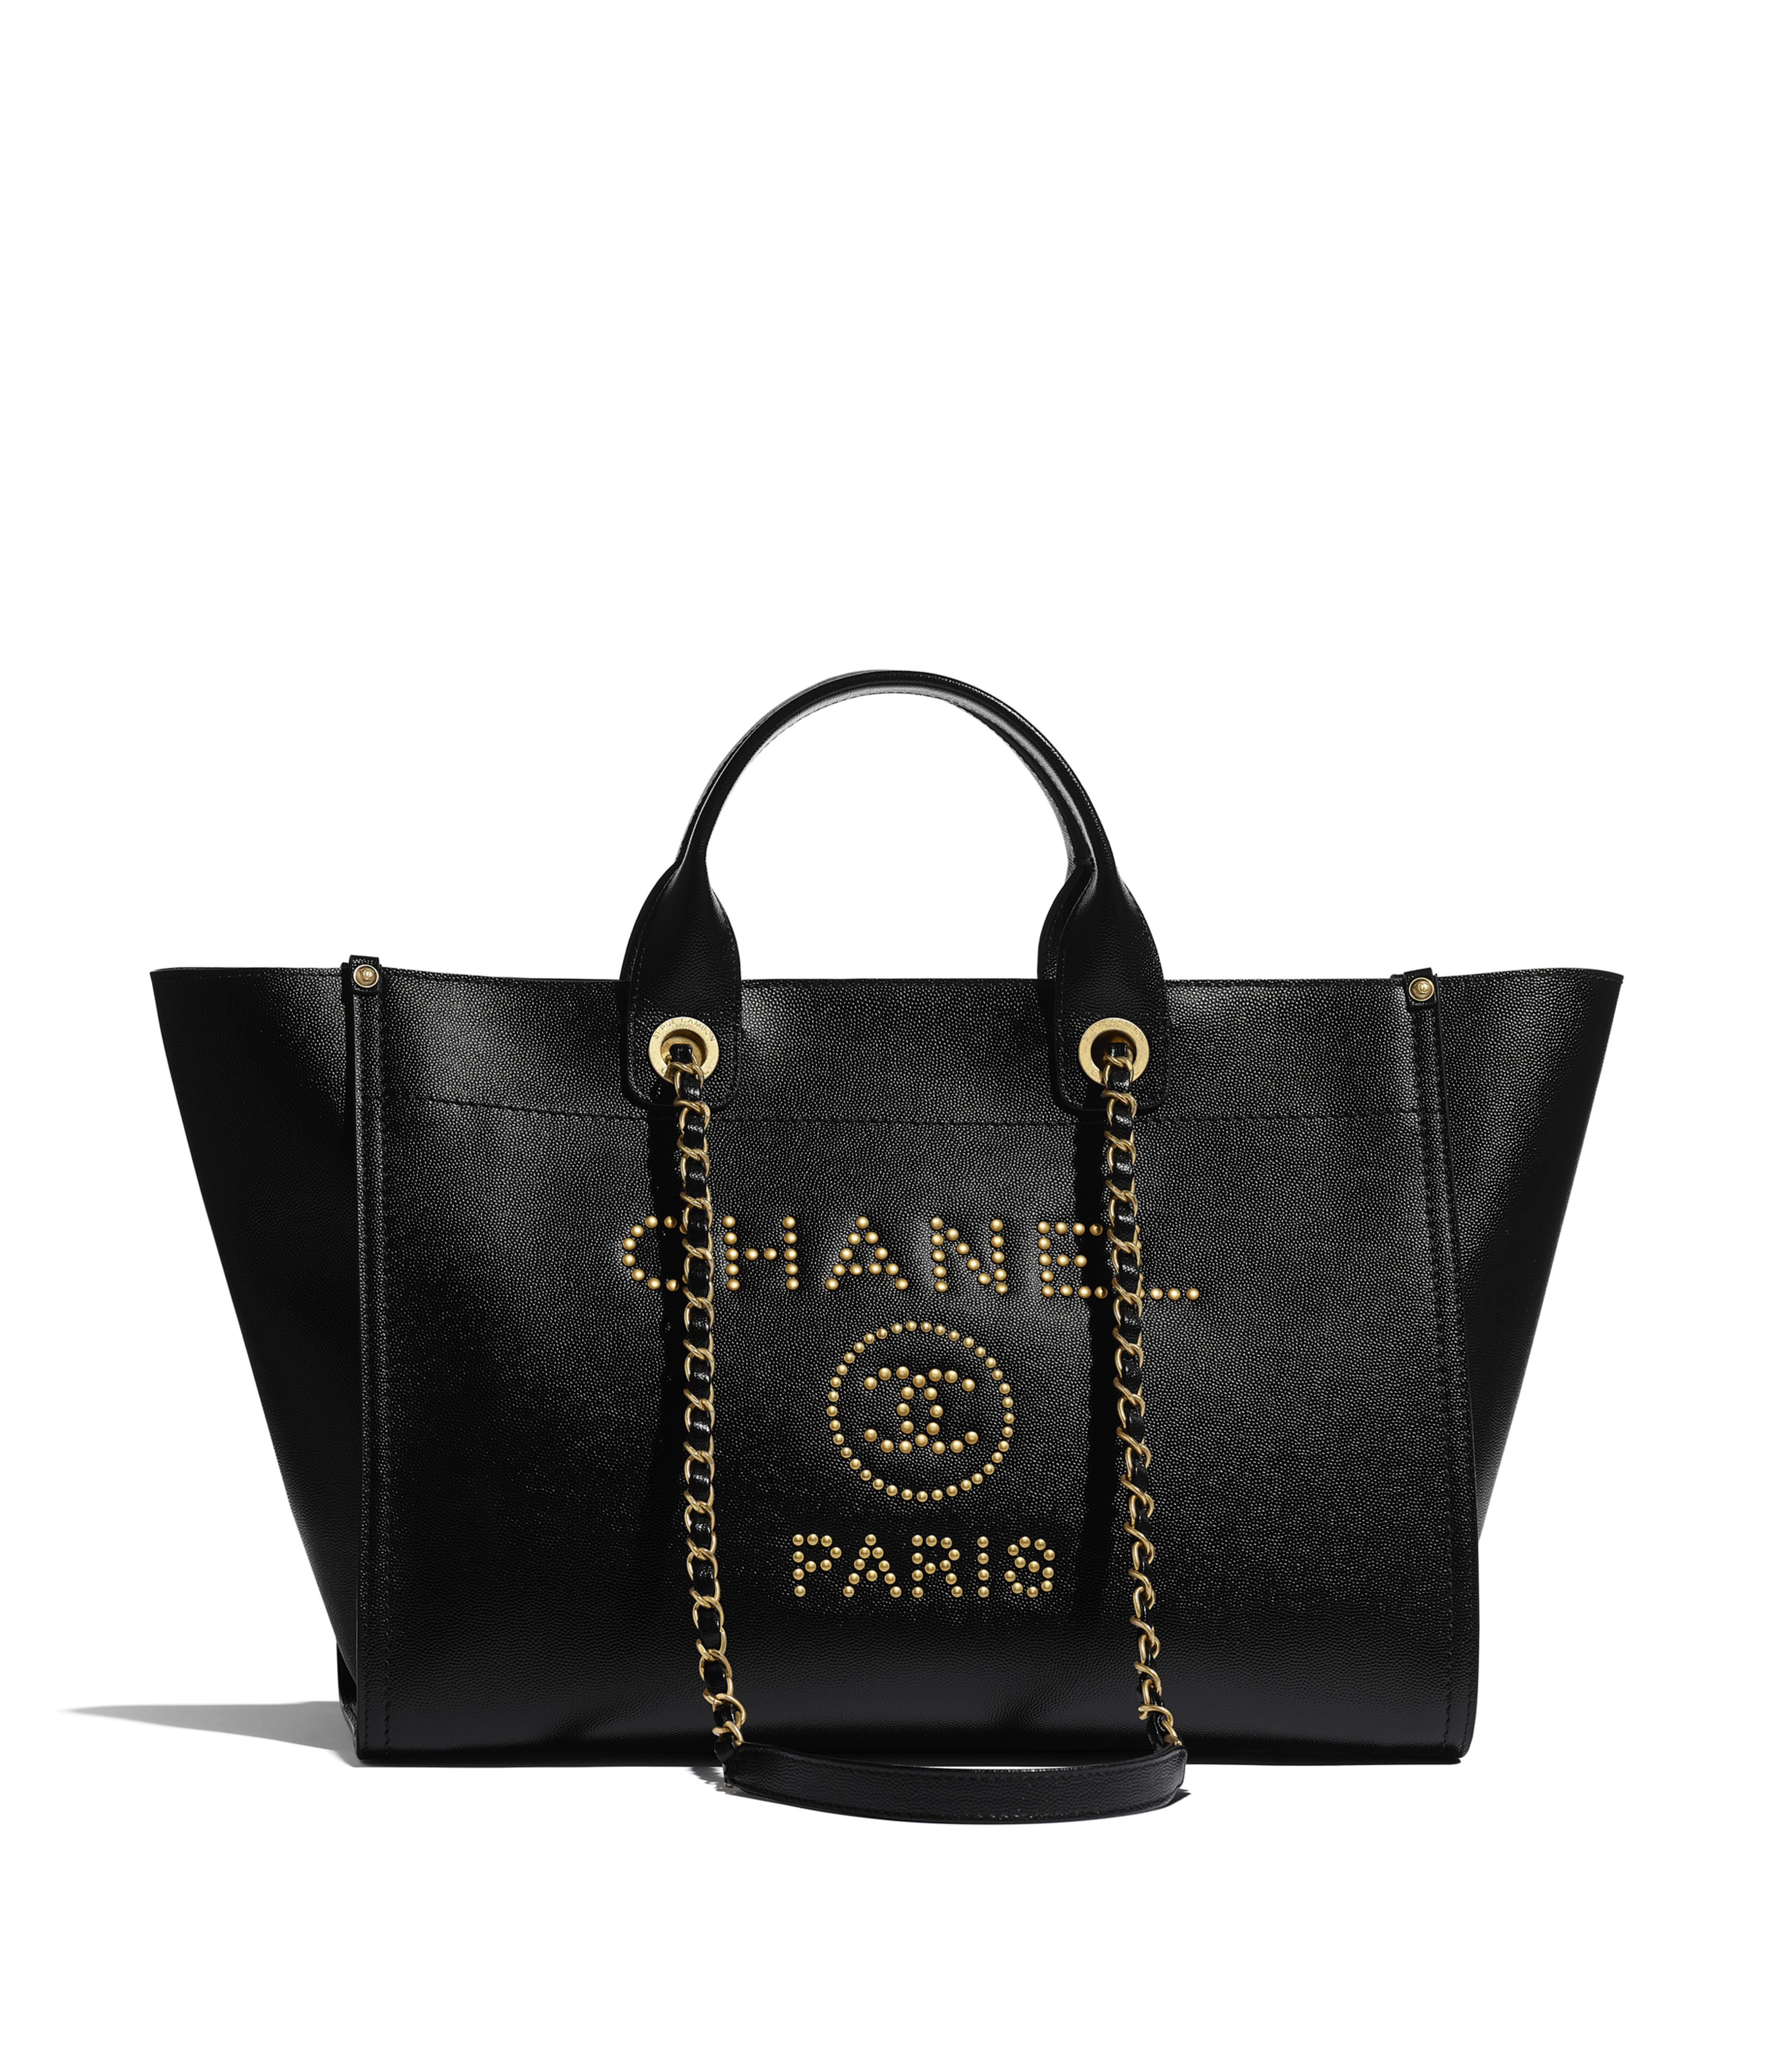 84809c12072 Large Shopping Bag Grained Calfskin & Gold-Tone Metal, Black Ref.  A57067Y8404694305